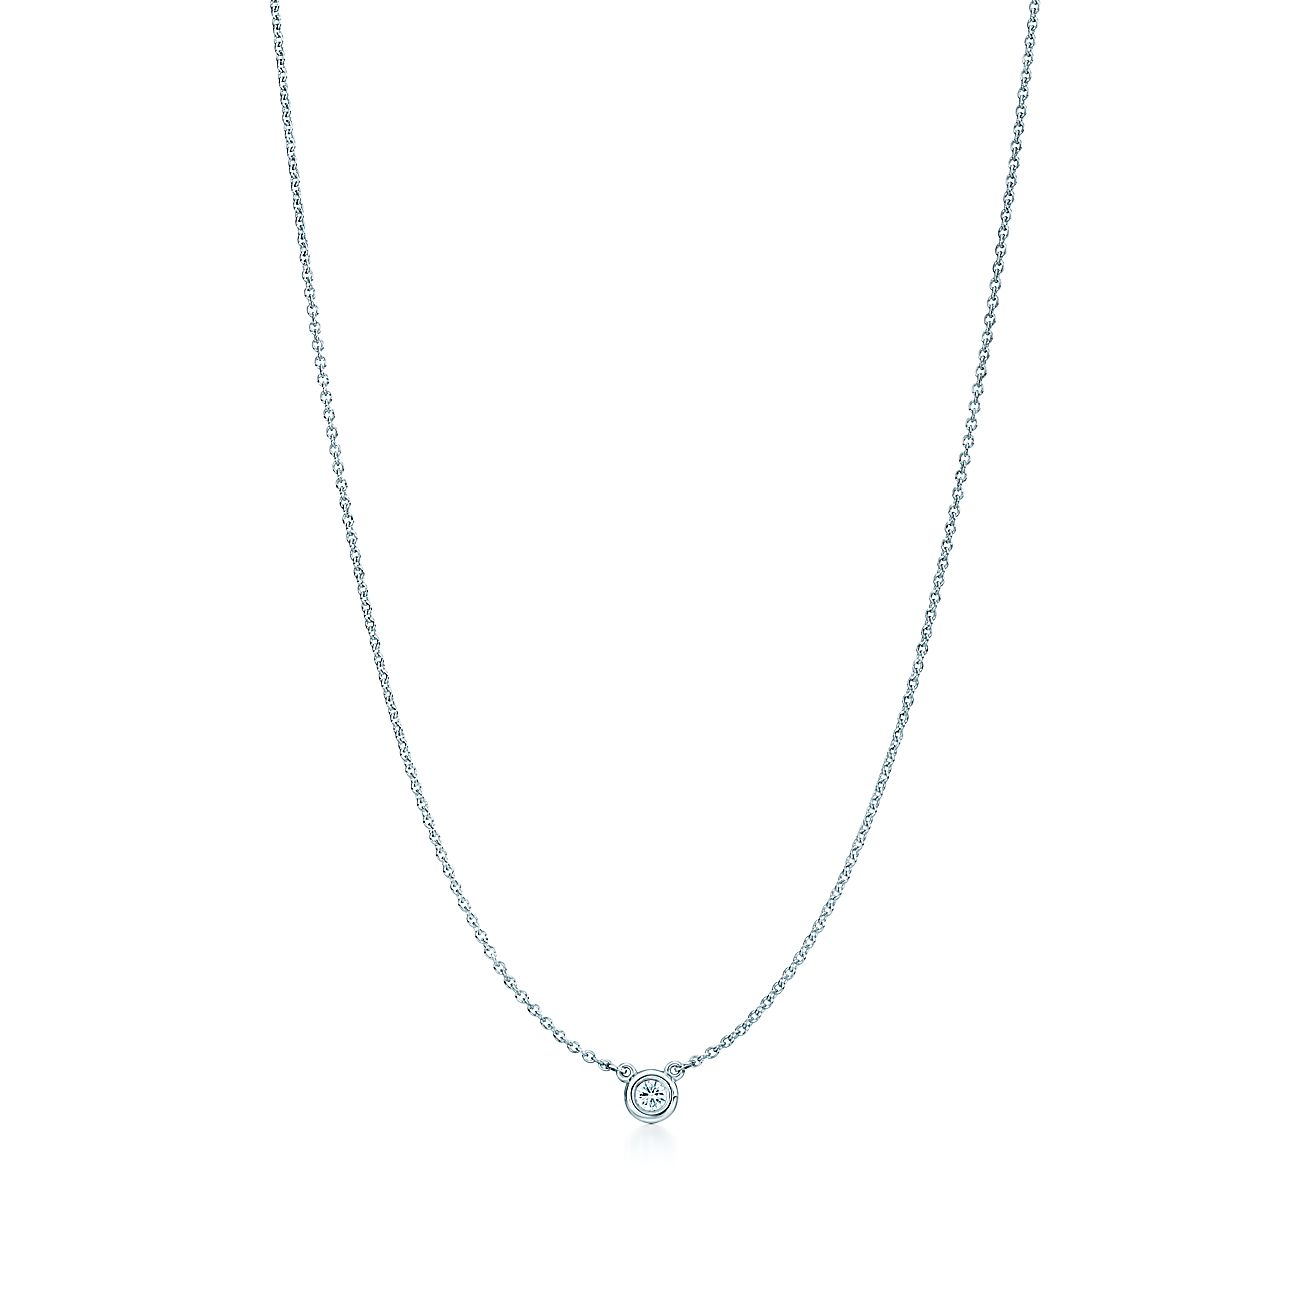 Elsa peretti diamonds by the yard pendant in sterling silver elsa peretti diamonds by the yard pendant in sterling silver tiffany co aloadofball Images